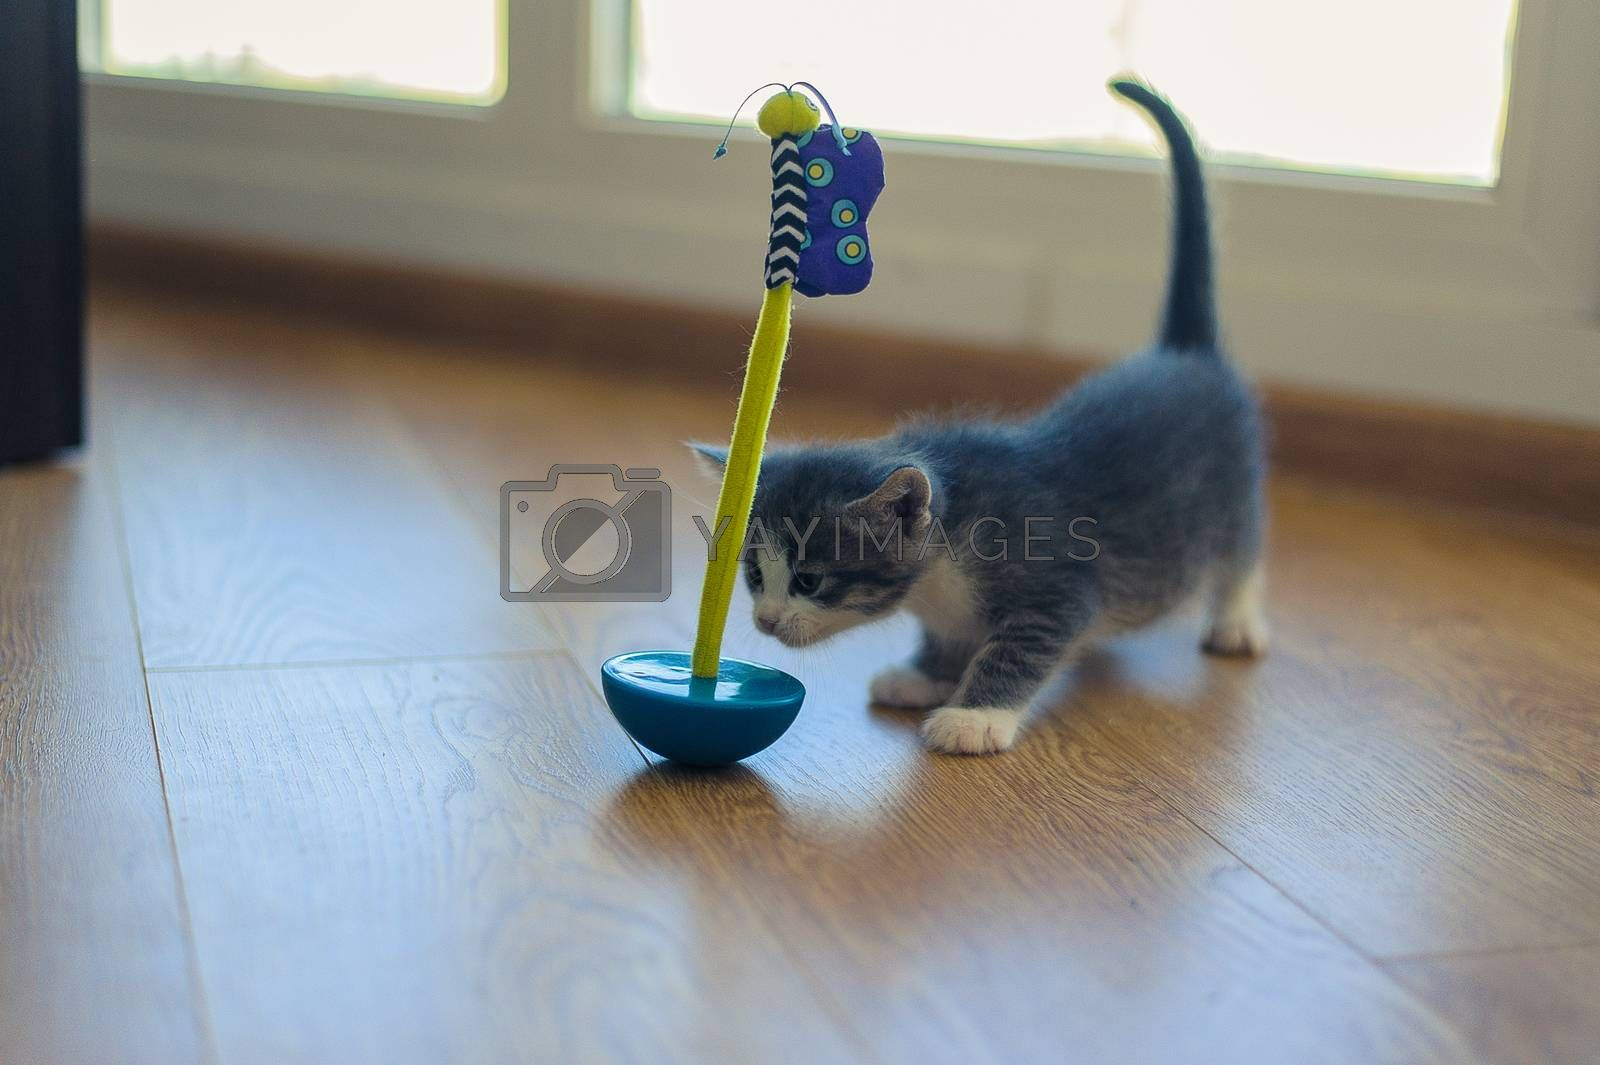 gray kitten is played with a round-bottomed toy on a wooden floor